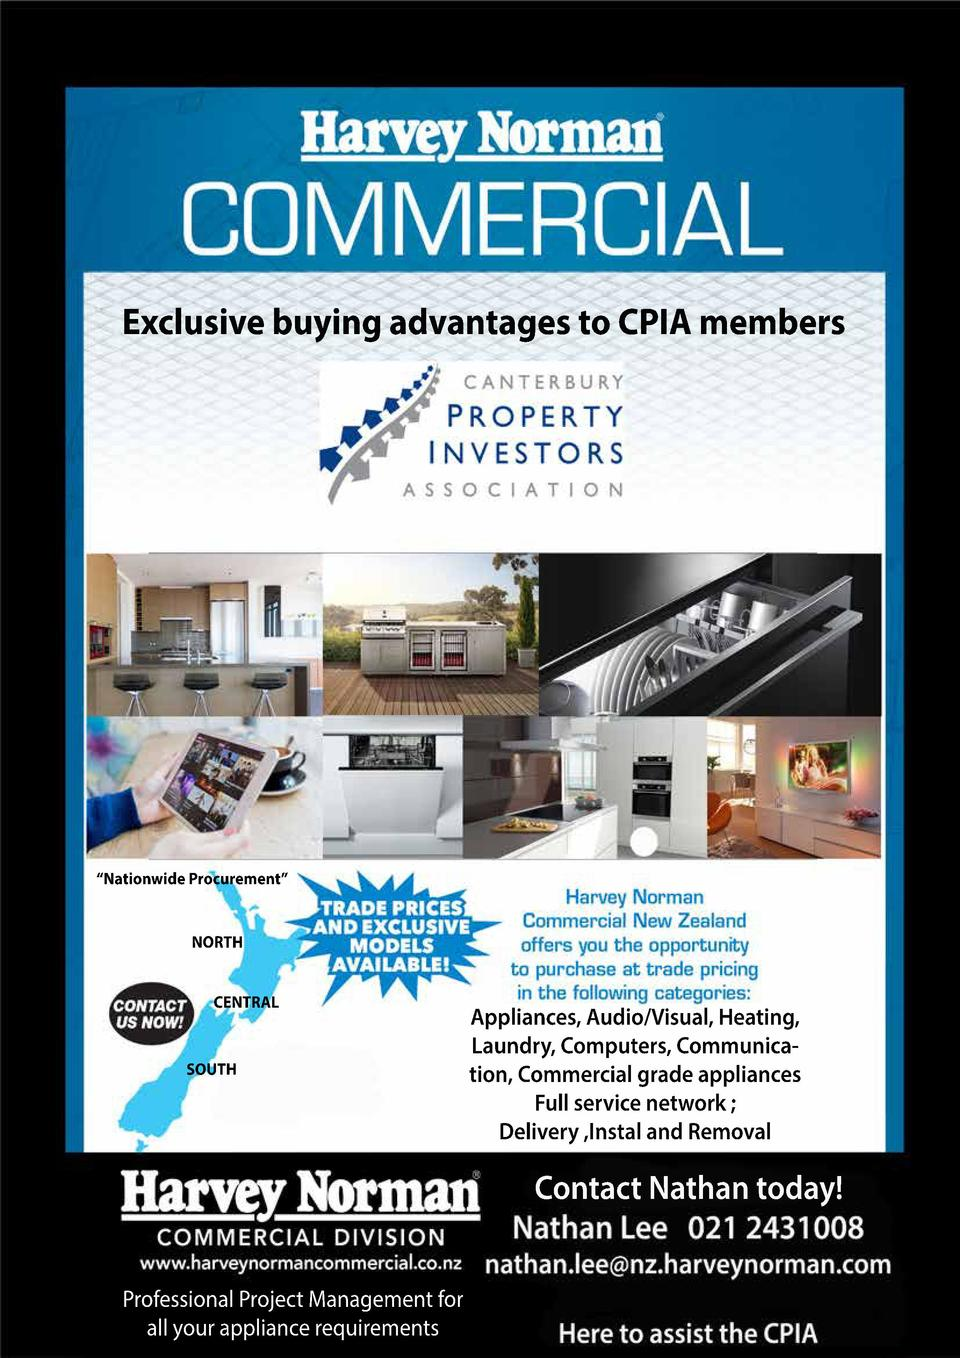 Exclusive buying advantages to CPIA members     Nationwide Procurement    NORTH CENTRAL  SOUTH  Appliances, Audio Visual, ...